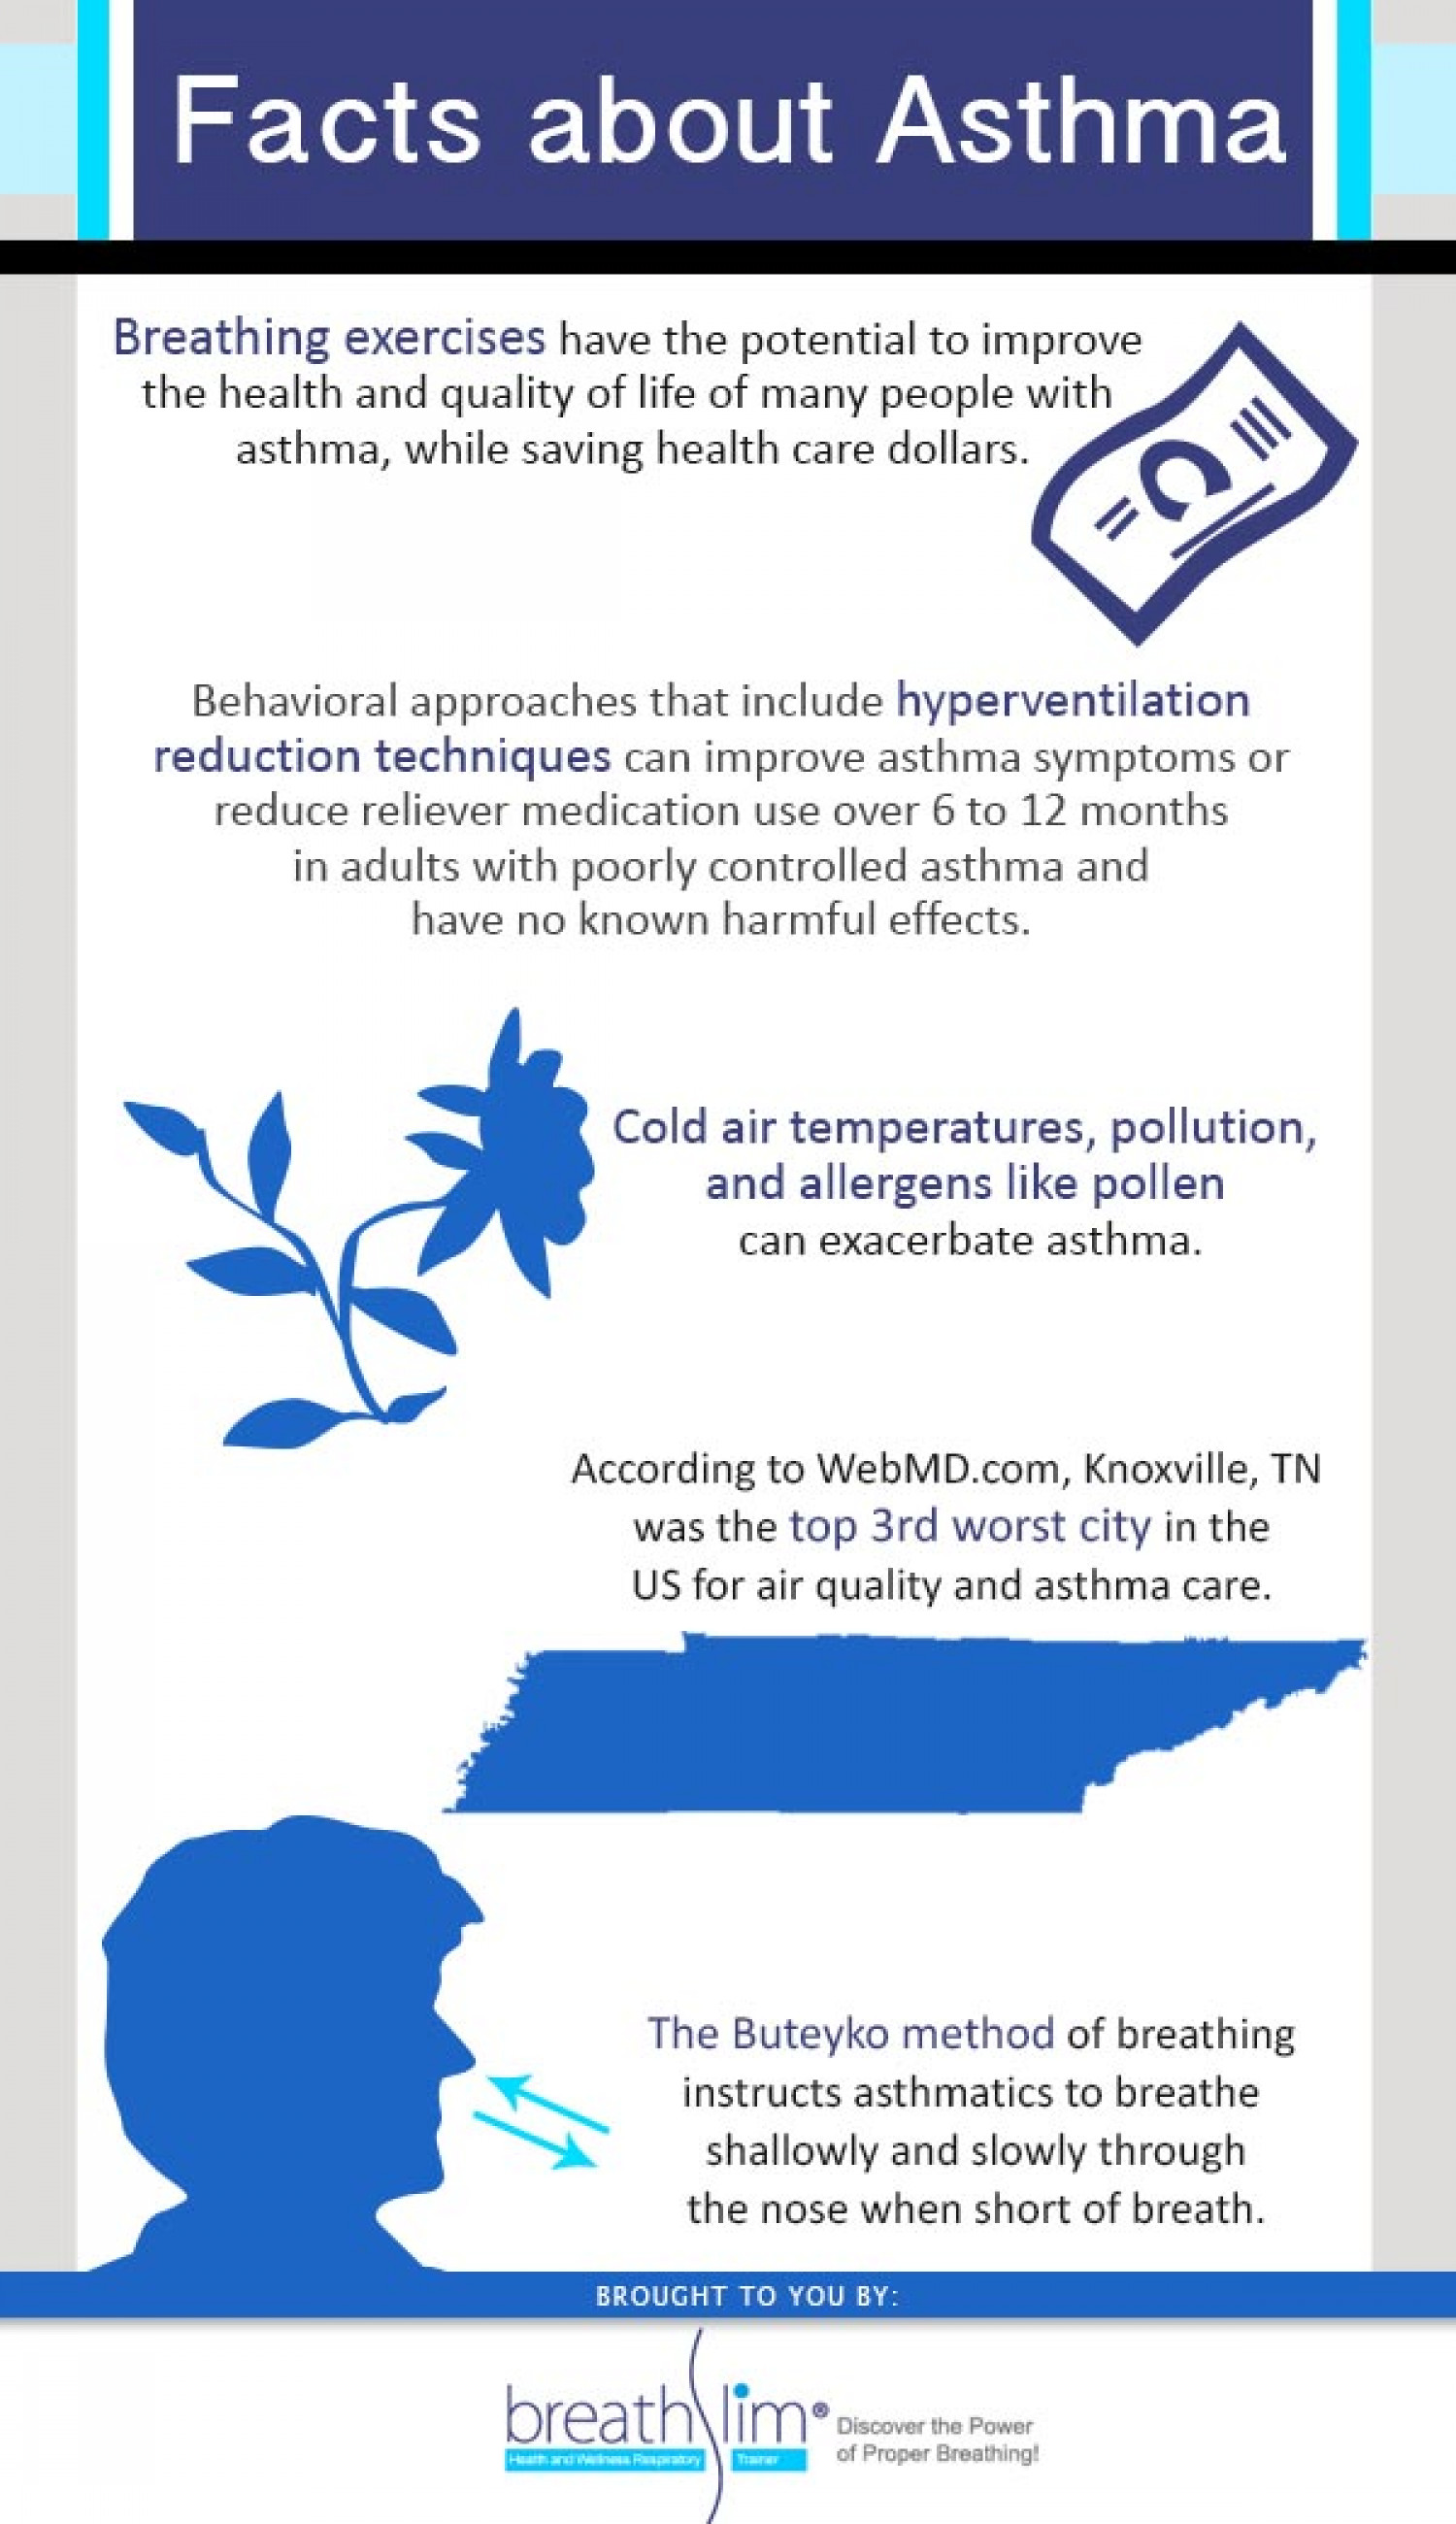 Asthma Facts Infographic